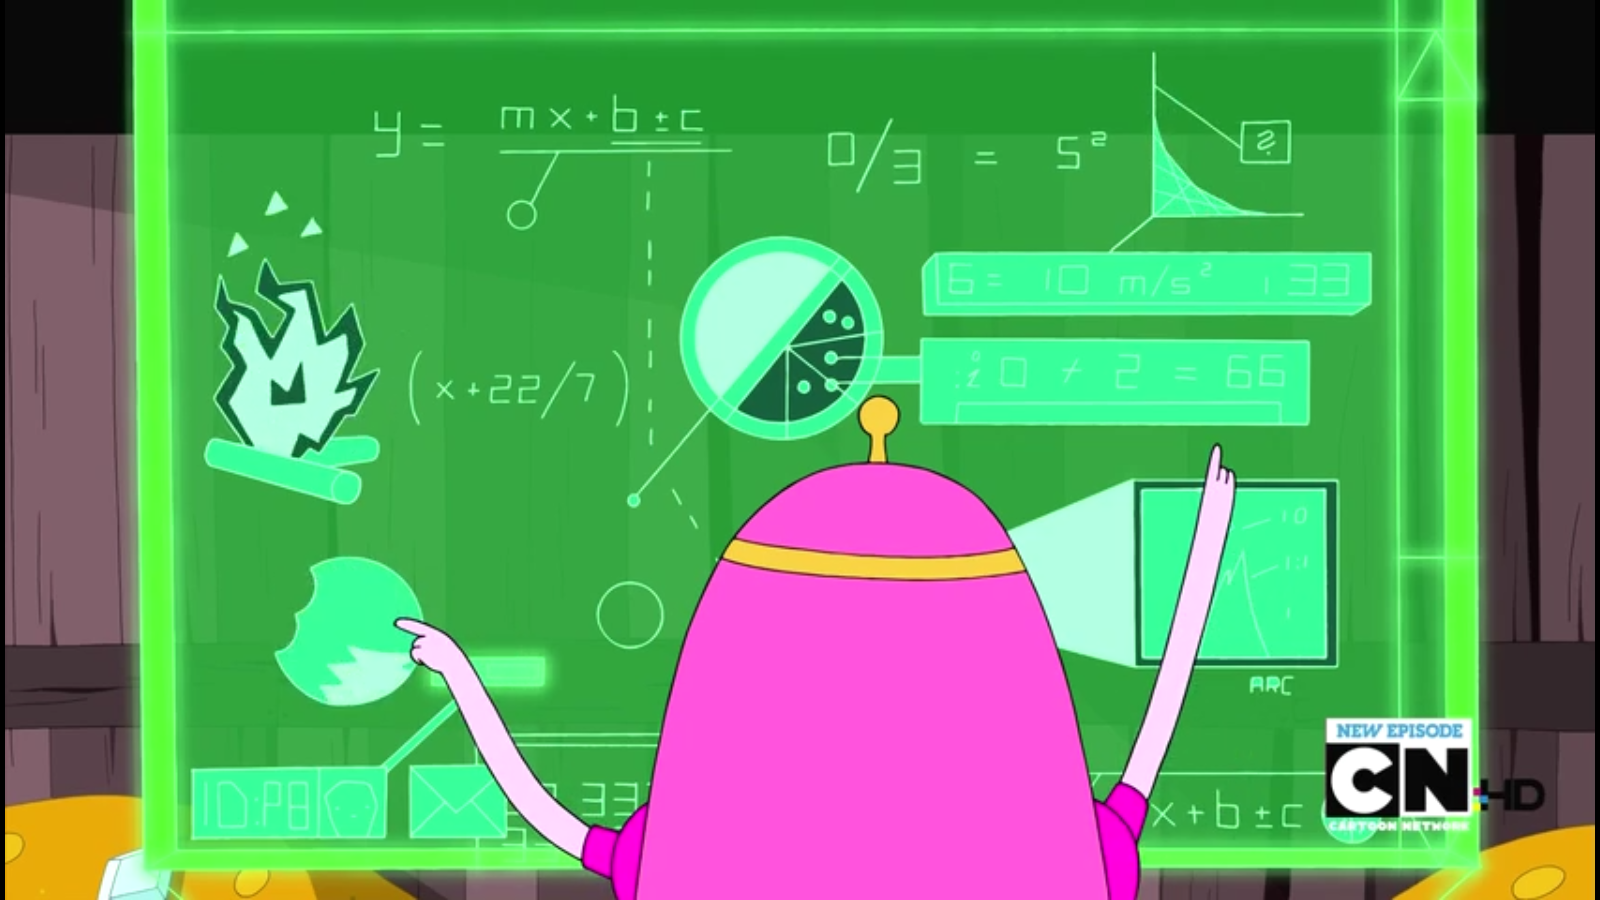 S4e16 PB's equations for the relationship